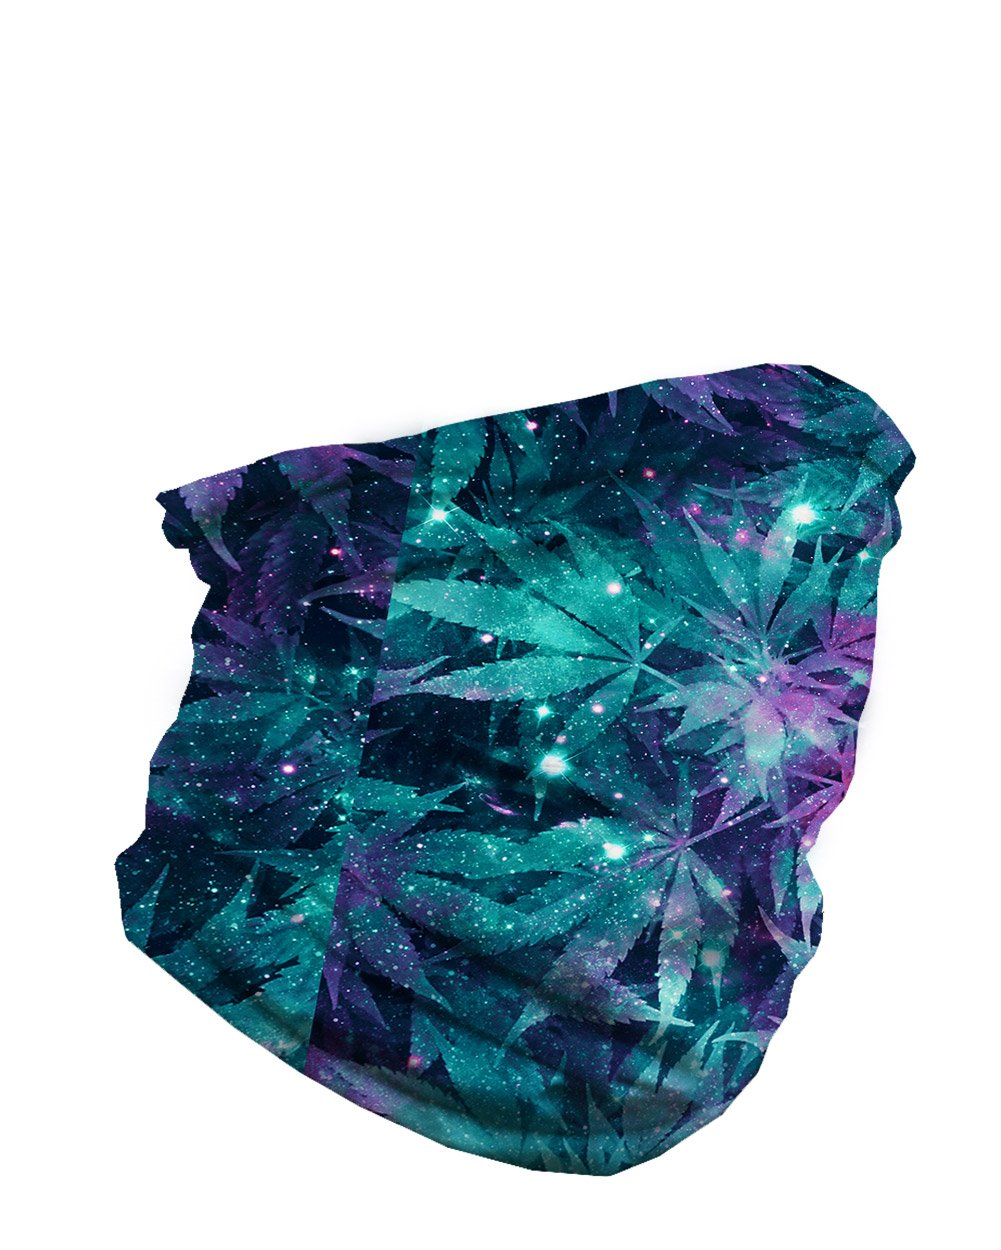 Ganja Galaxy Seamless Mask Bandana, Rave Bandana for Festivals-side